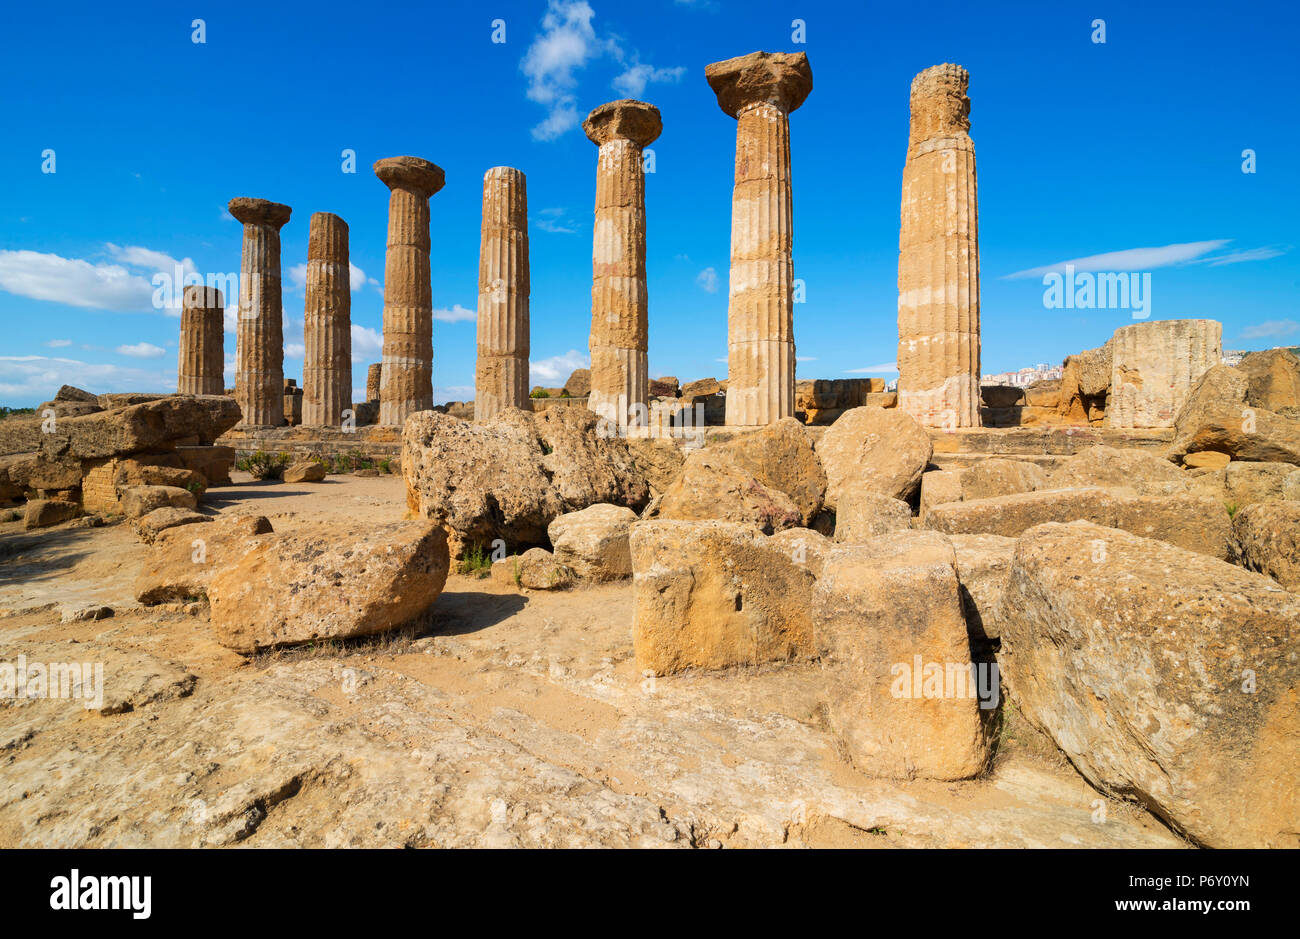 Remains of Temple of Heracles, Valley of the Temples, Agrigento, Sicily, Italy - Stock Image